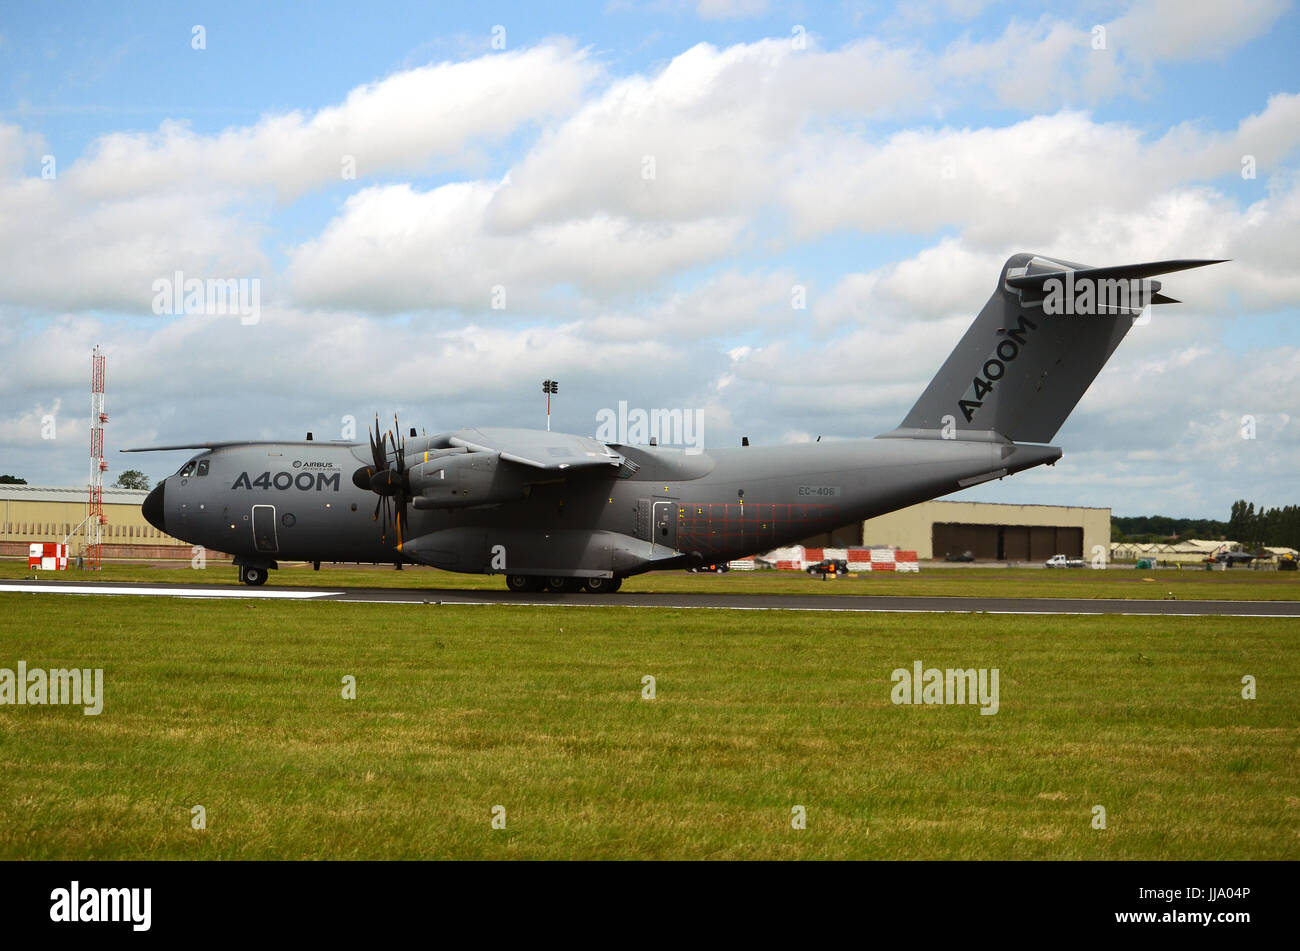 RAF military transport aircraft A400 Airbus - Stock Image